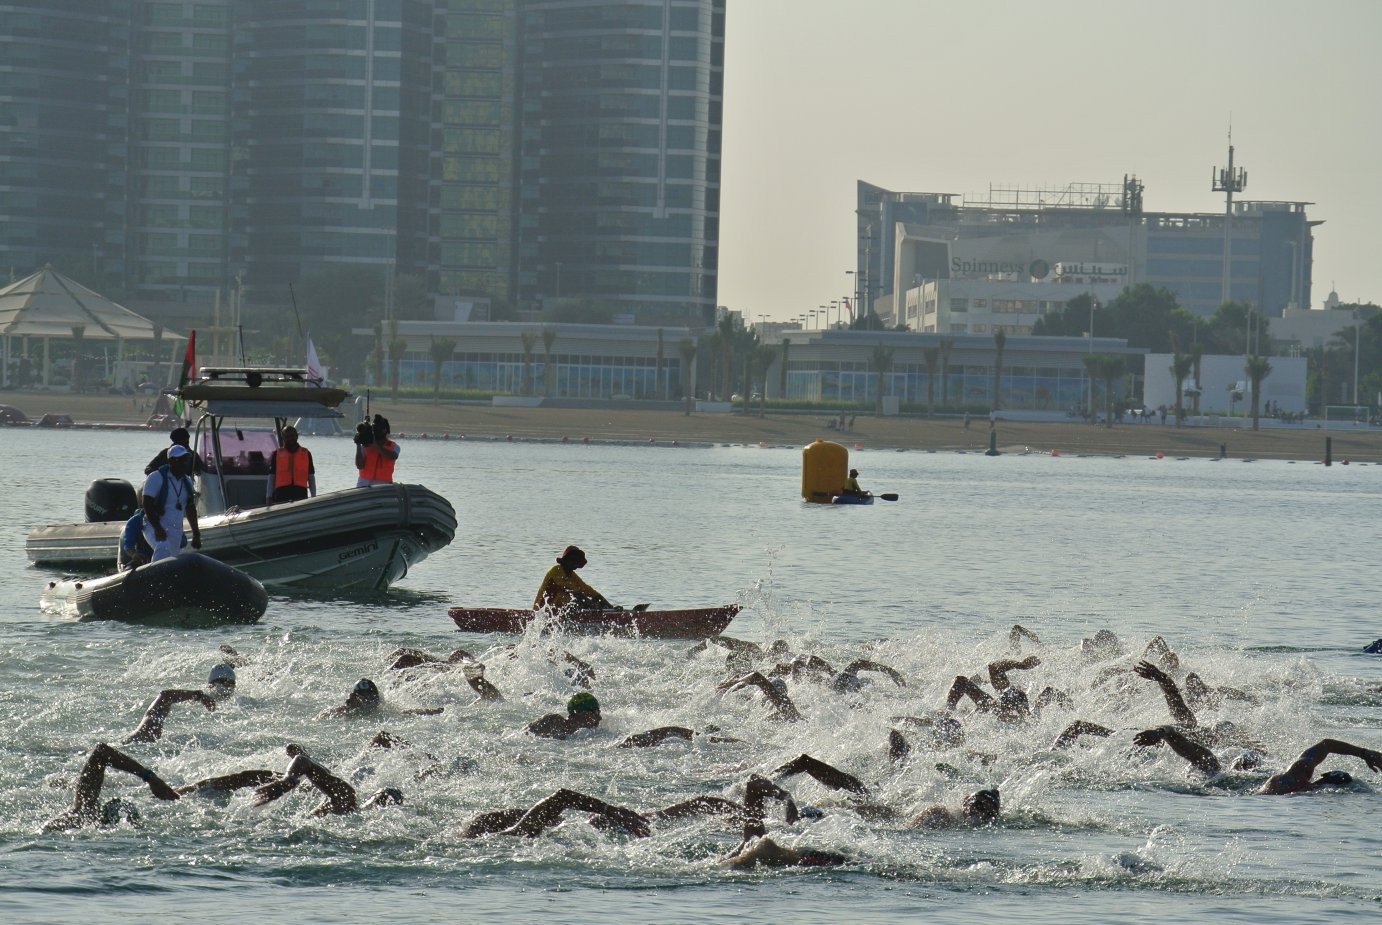 Arianna Bridi of Italy was women's winner on the day in the FNA Marathon Swim World Series race at Abu Dhabi, with Brazil's Ana Marcela Cunha claiming the overall title ©FINA